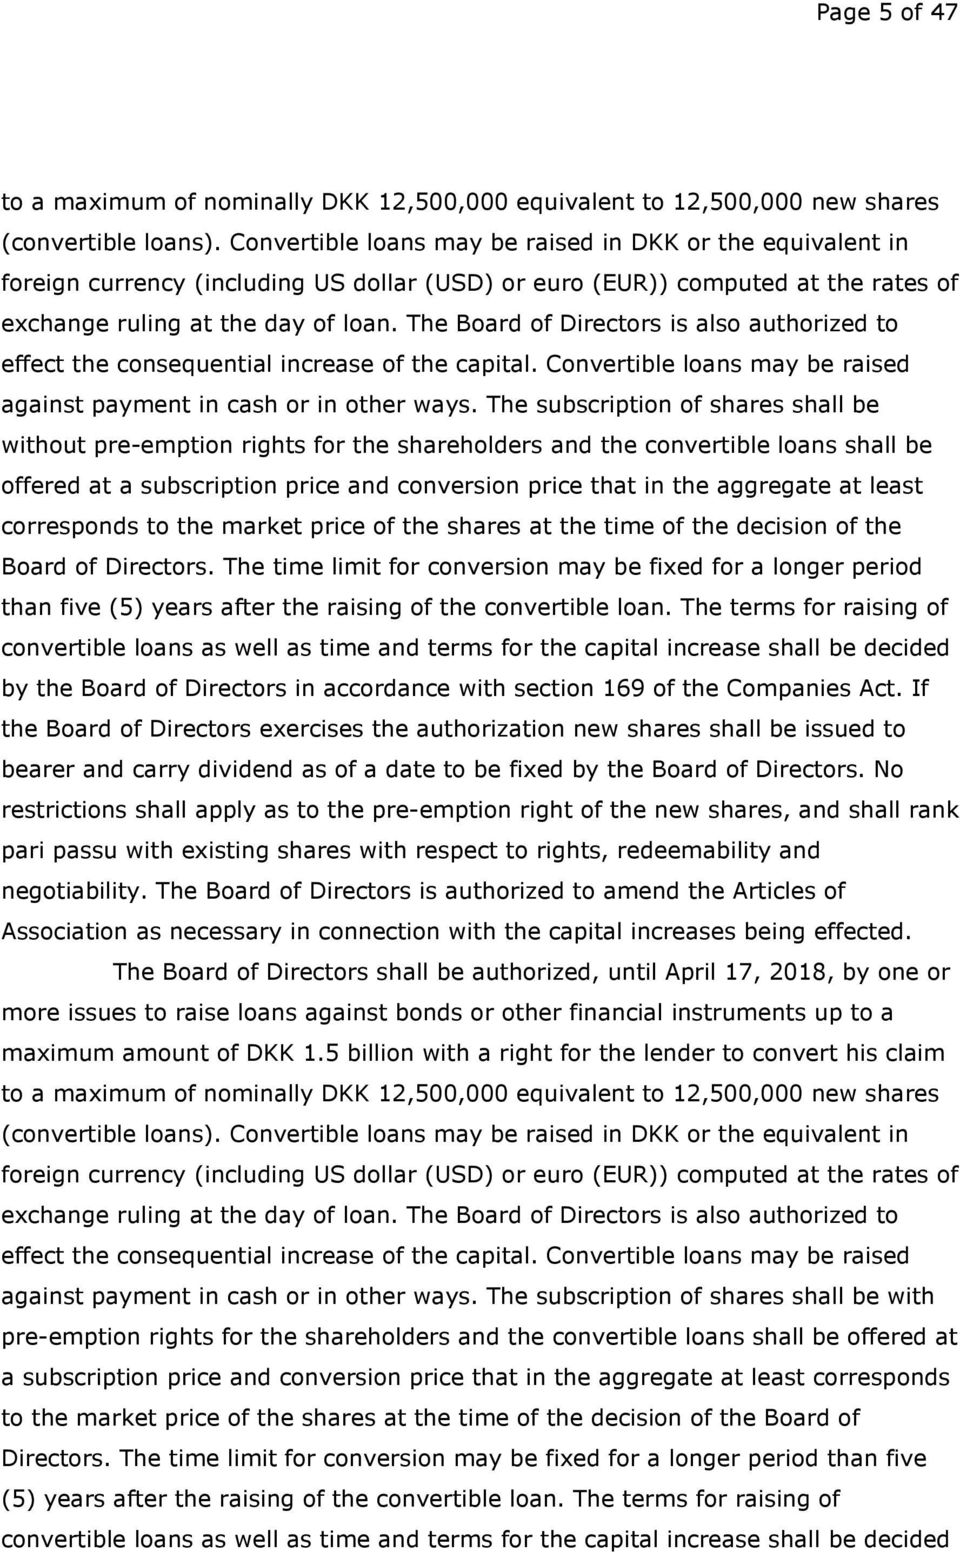 The Board of Directors is also authorized to effect the consequential increase of the capital. Convertible loans may be raised against payment in cash or in other ways.